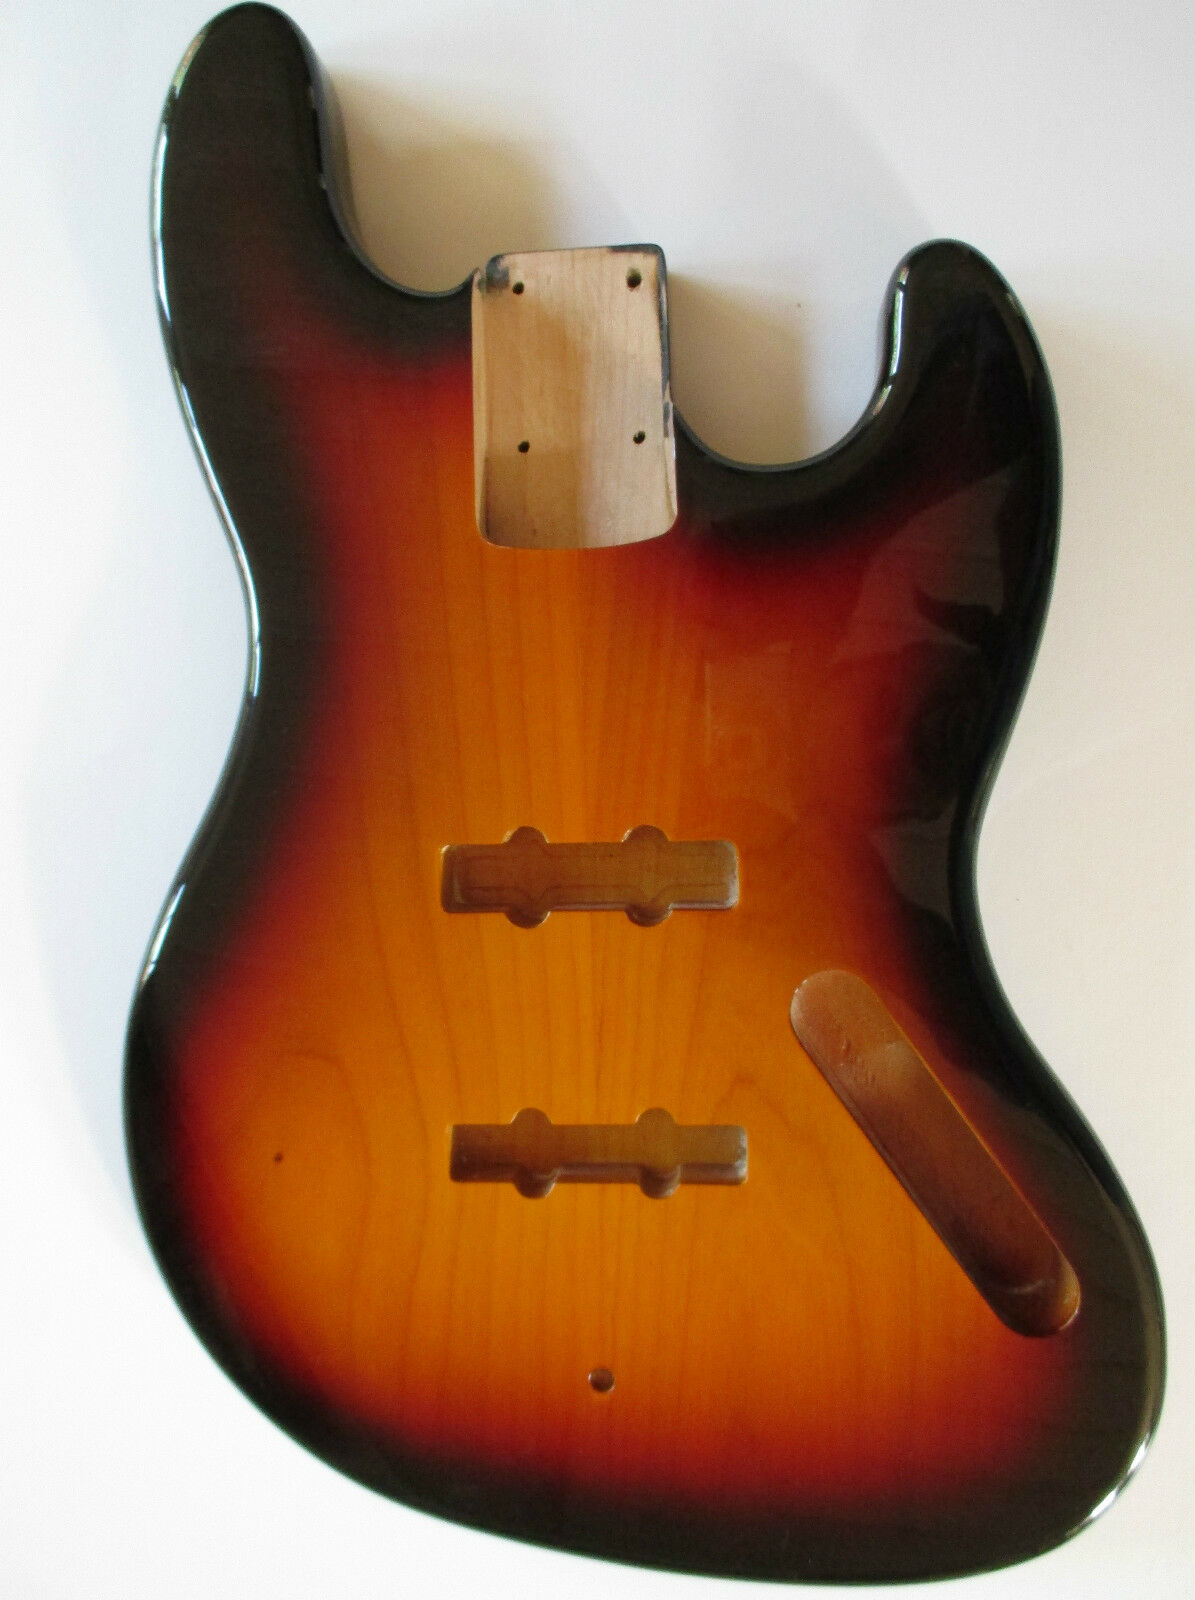 J Bass Body style Korpus US ROT alder Roterle 3 tone Sunburst replacementbody